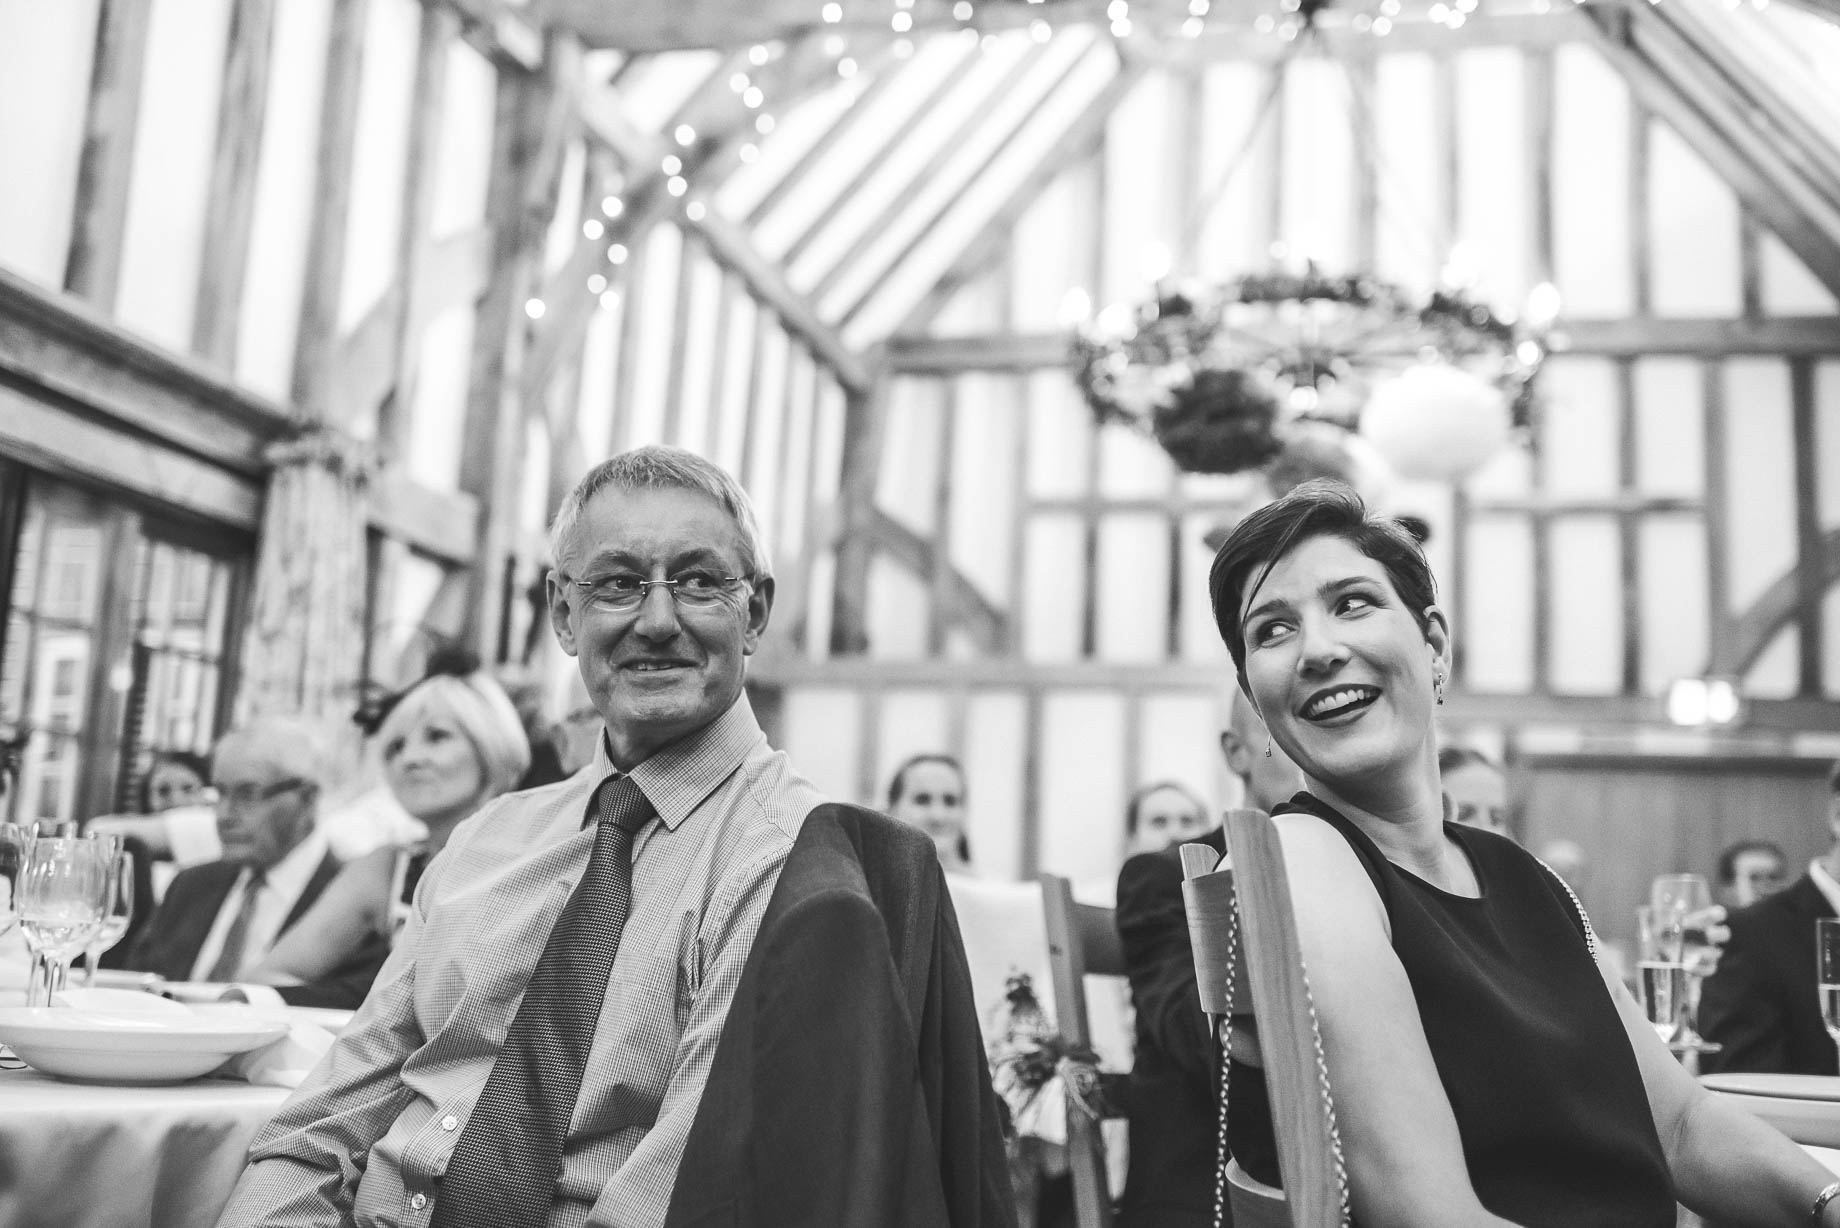 Gate Street Barn wedding photography - Guy Collier - Claire and Andy (155 of 192)